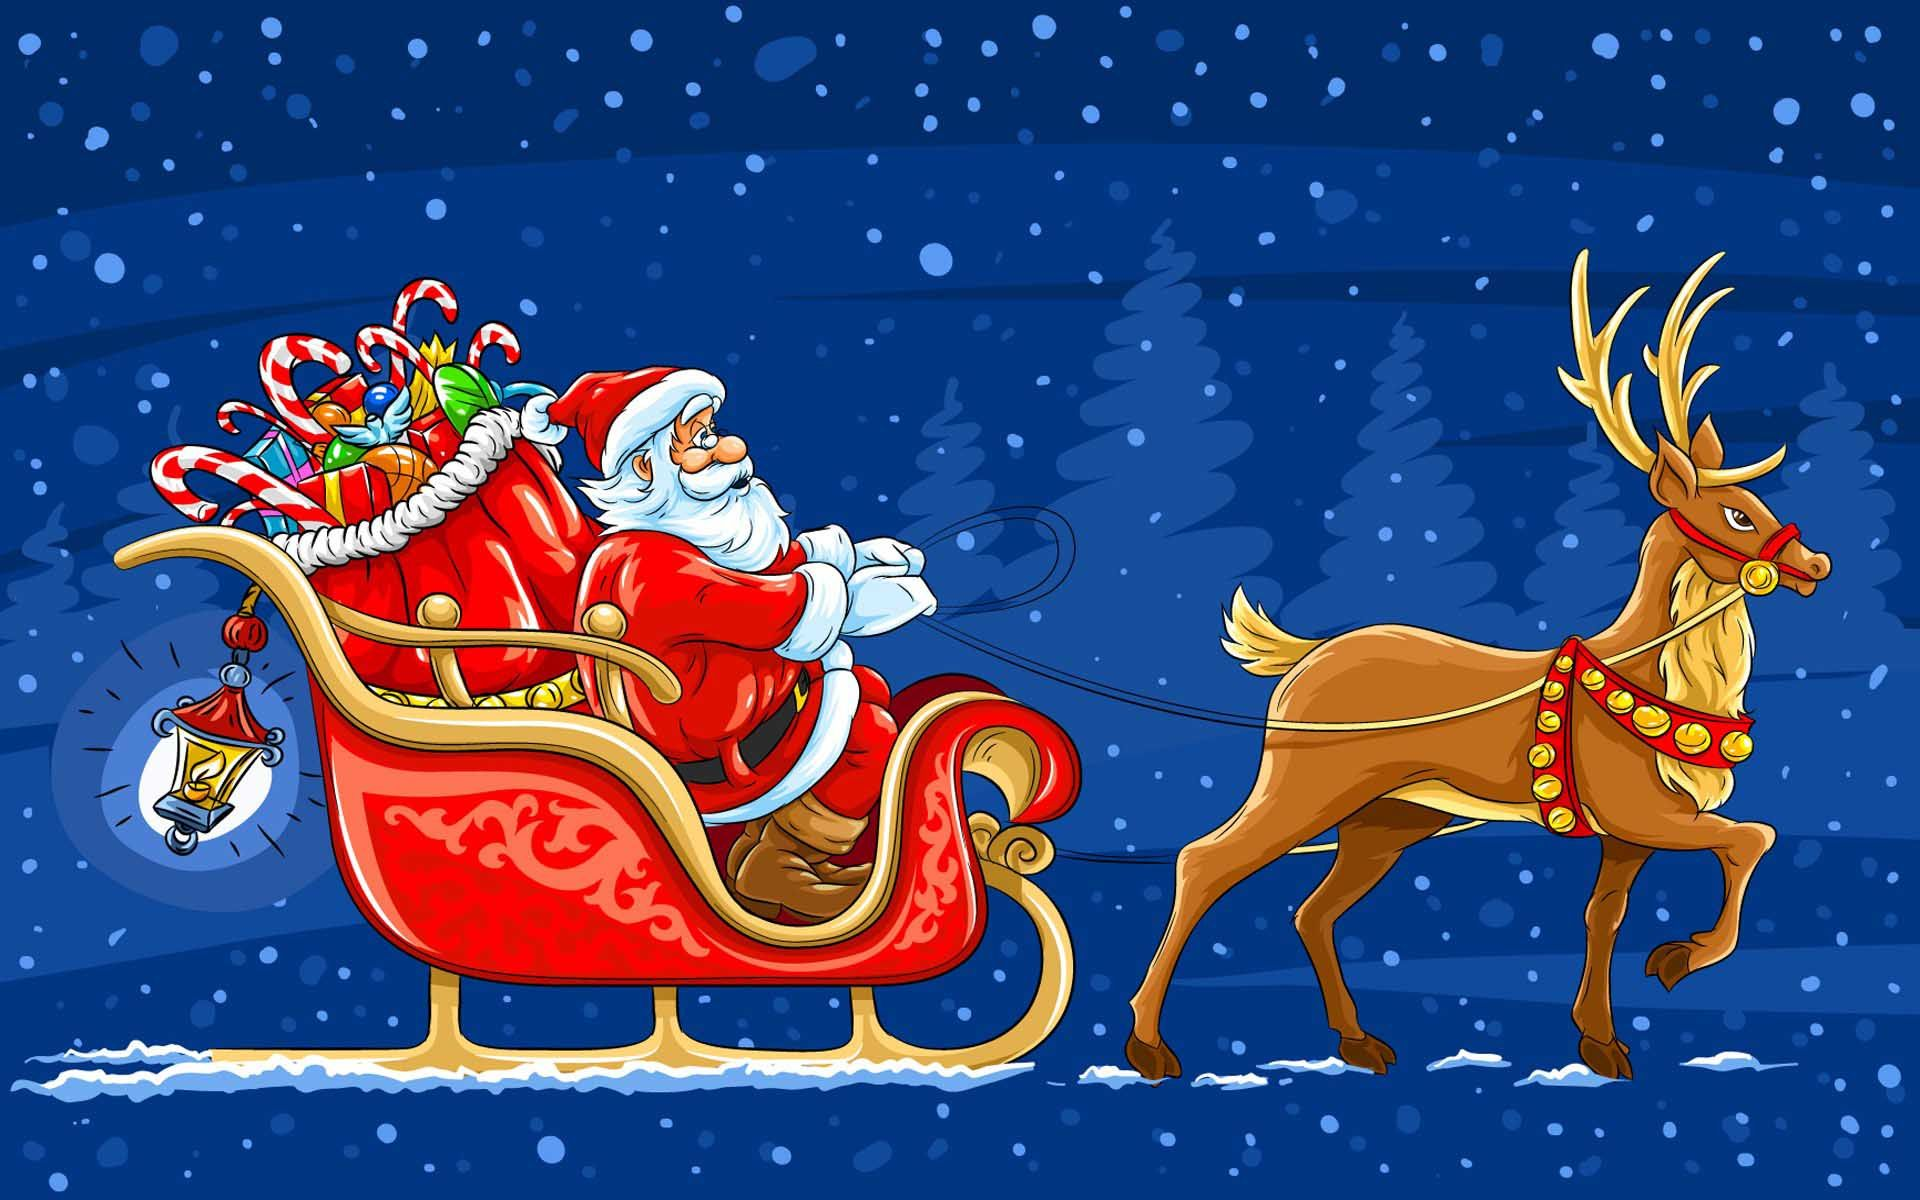 Holidays Christmas Santa Claus Moving Sledge Reindeer Gifts Backgrounds Wallpaper 1920x1200